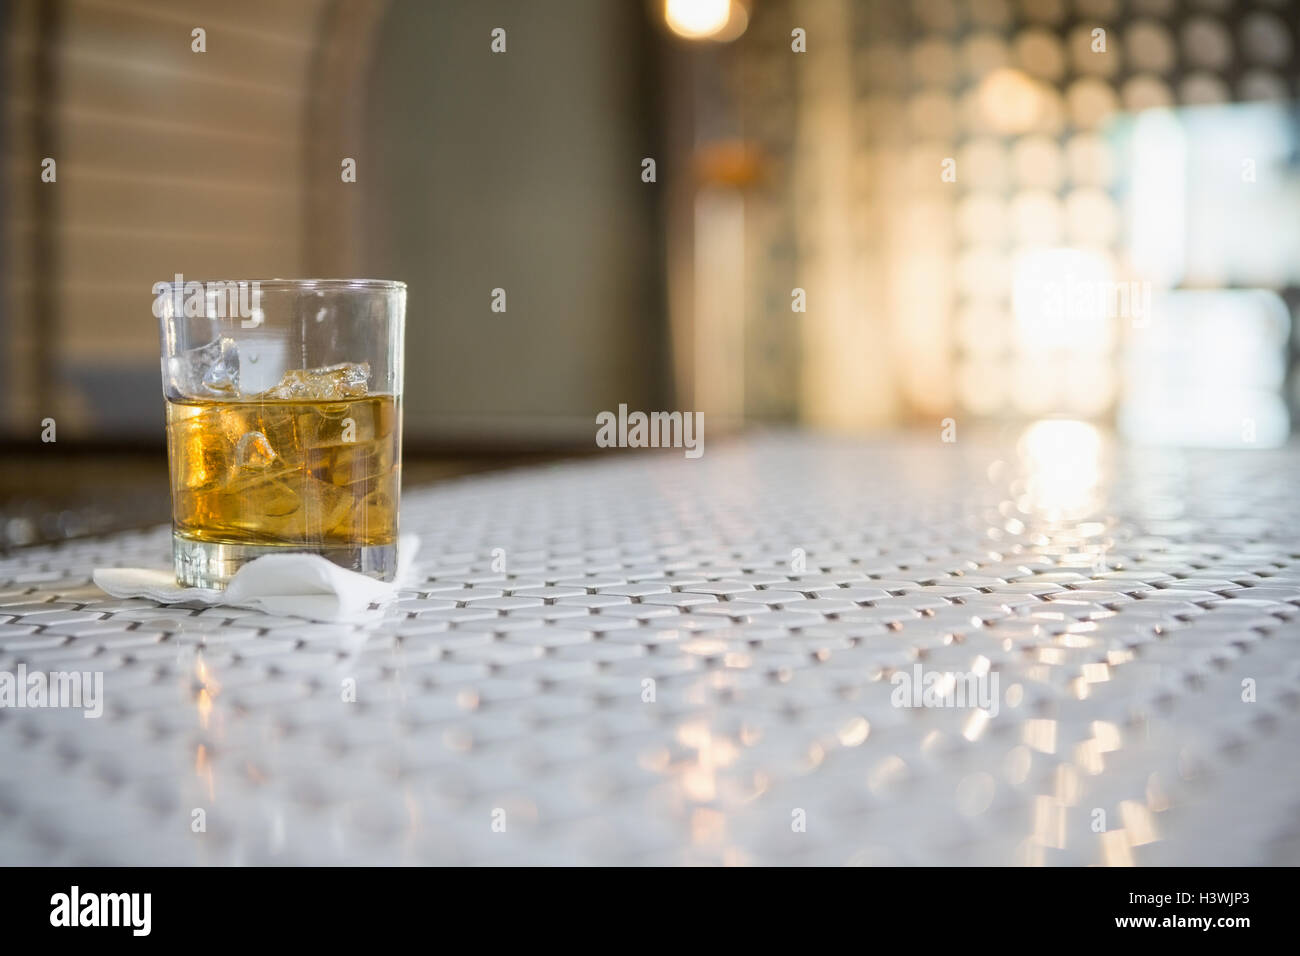 Glass of whisky with ice cube on bar counter - Stock Image